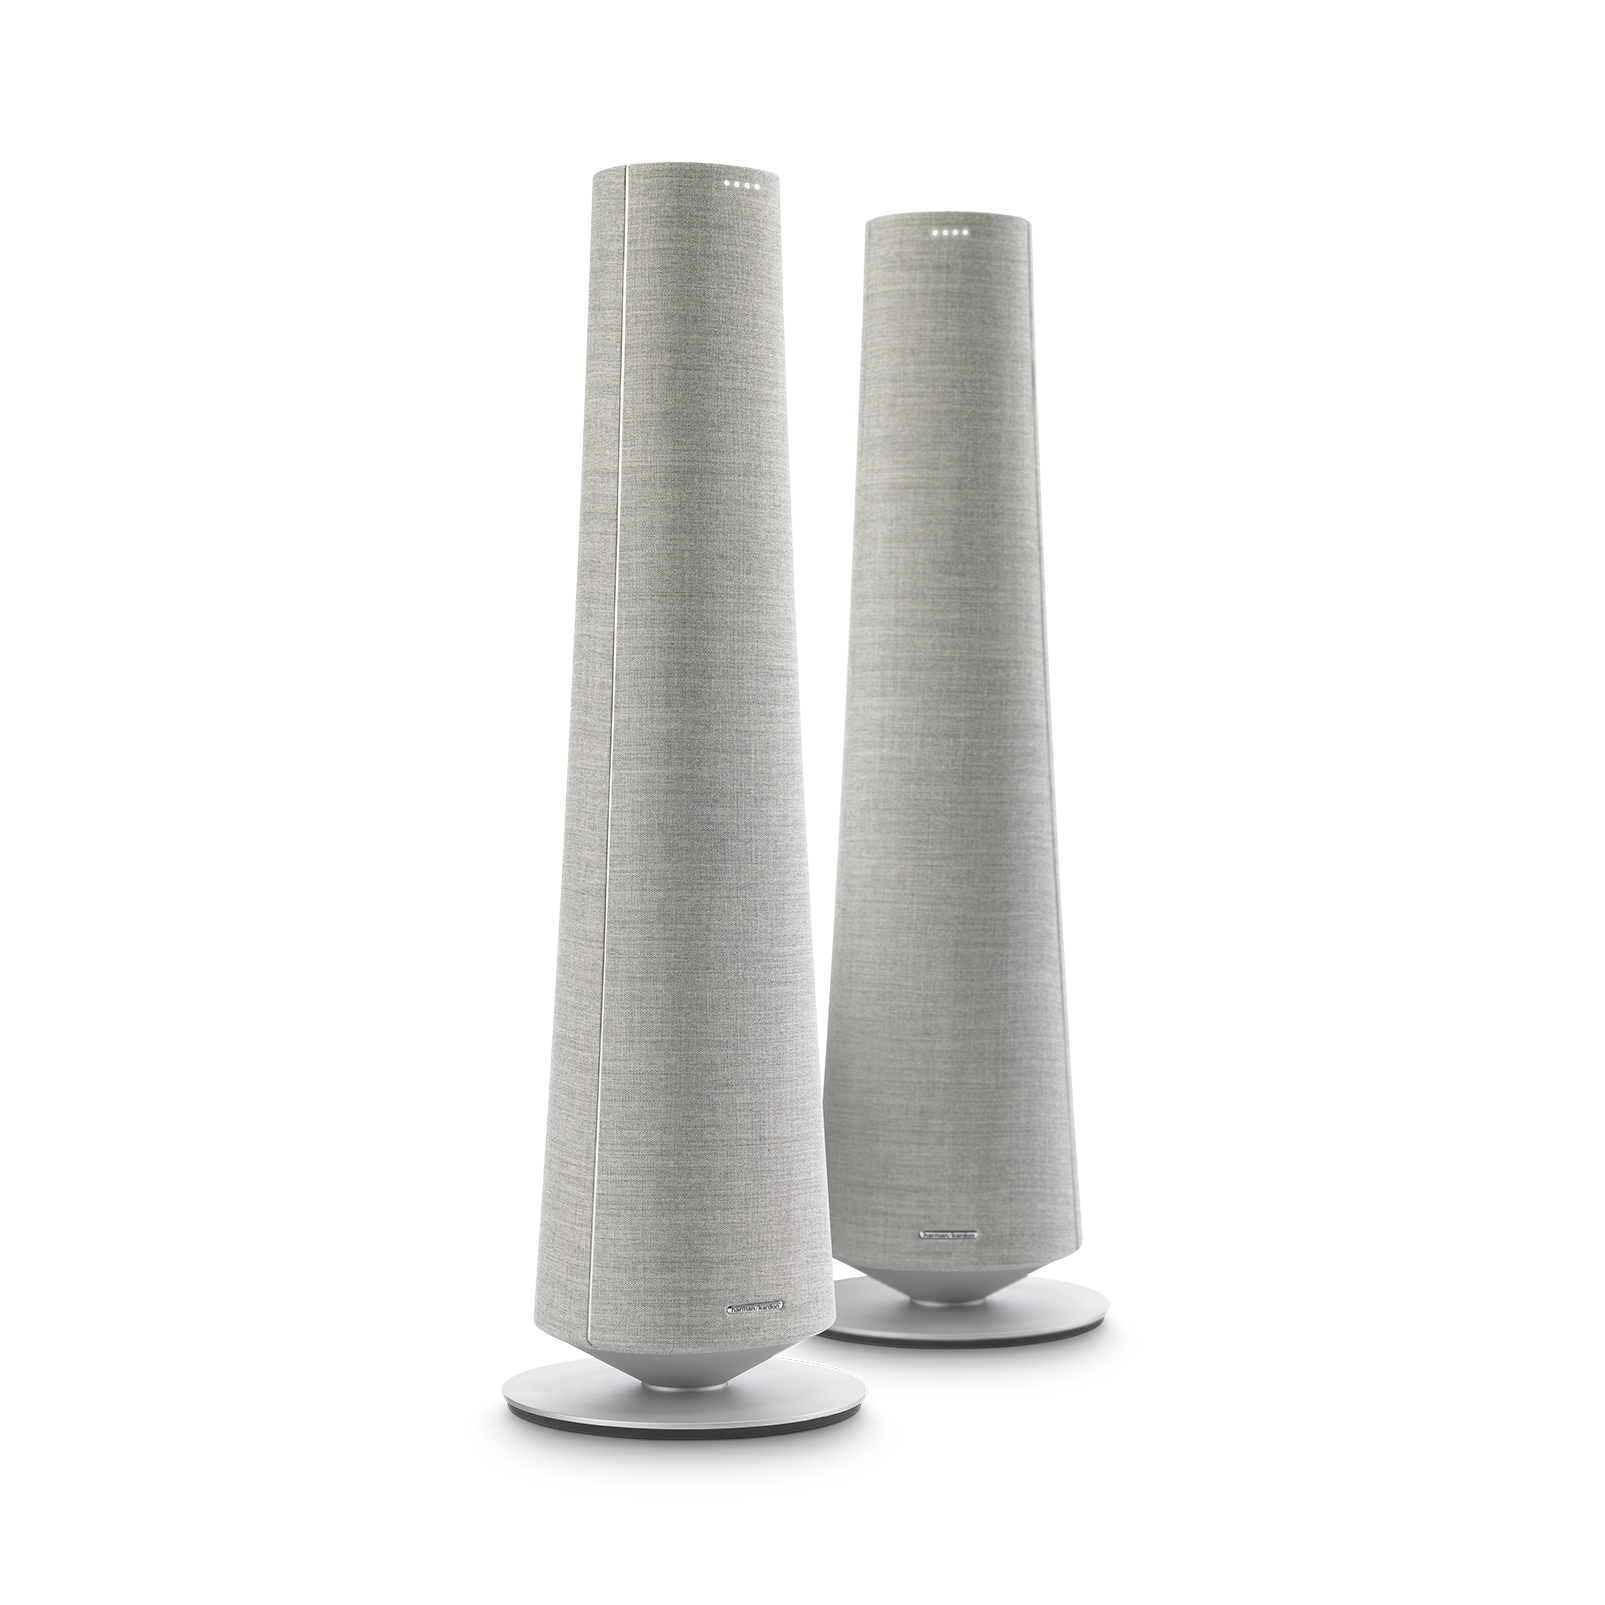 Harman Kardon Citation Tower - Grey - Smart Premium Floorstanding Speaker that delivers an impactful performance - Hero